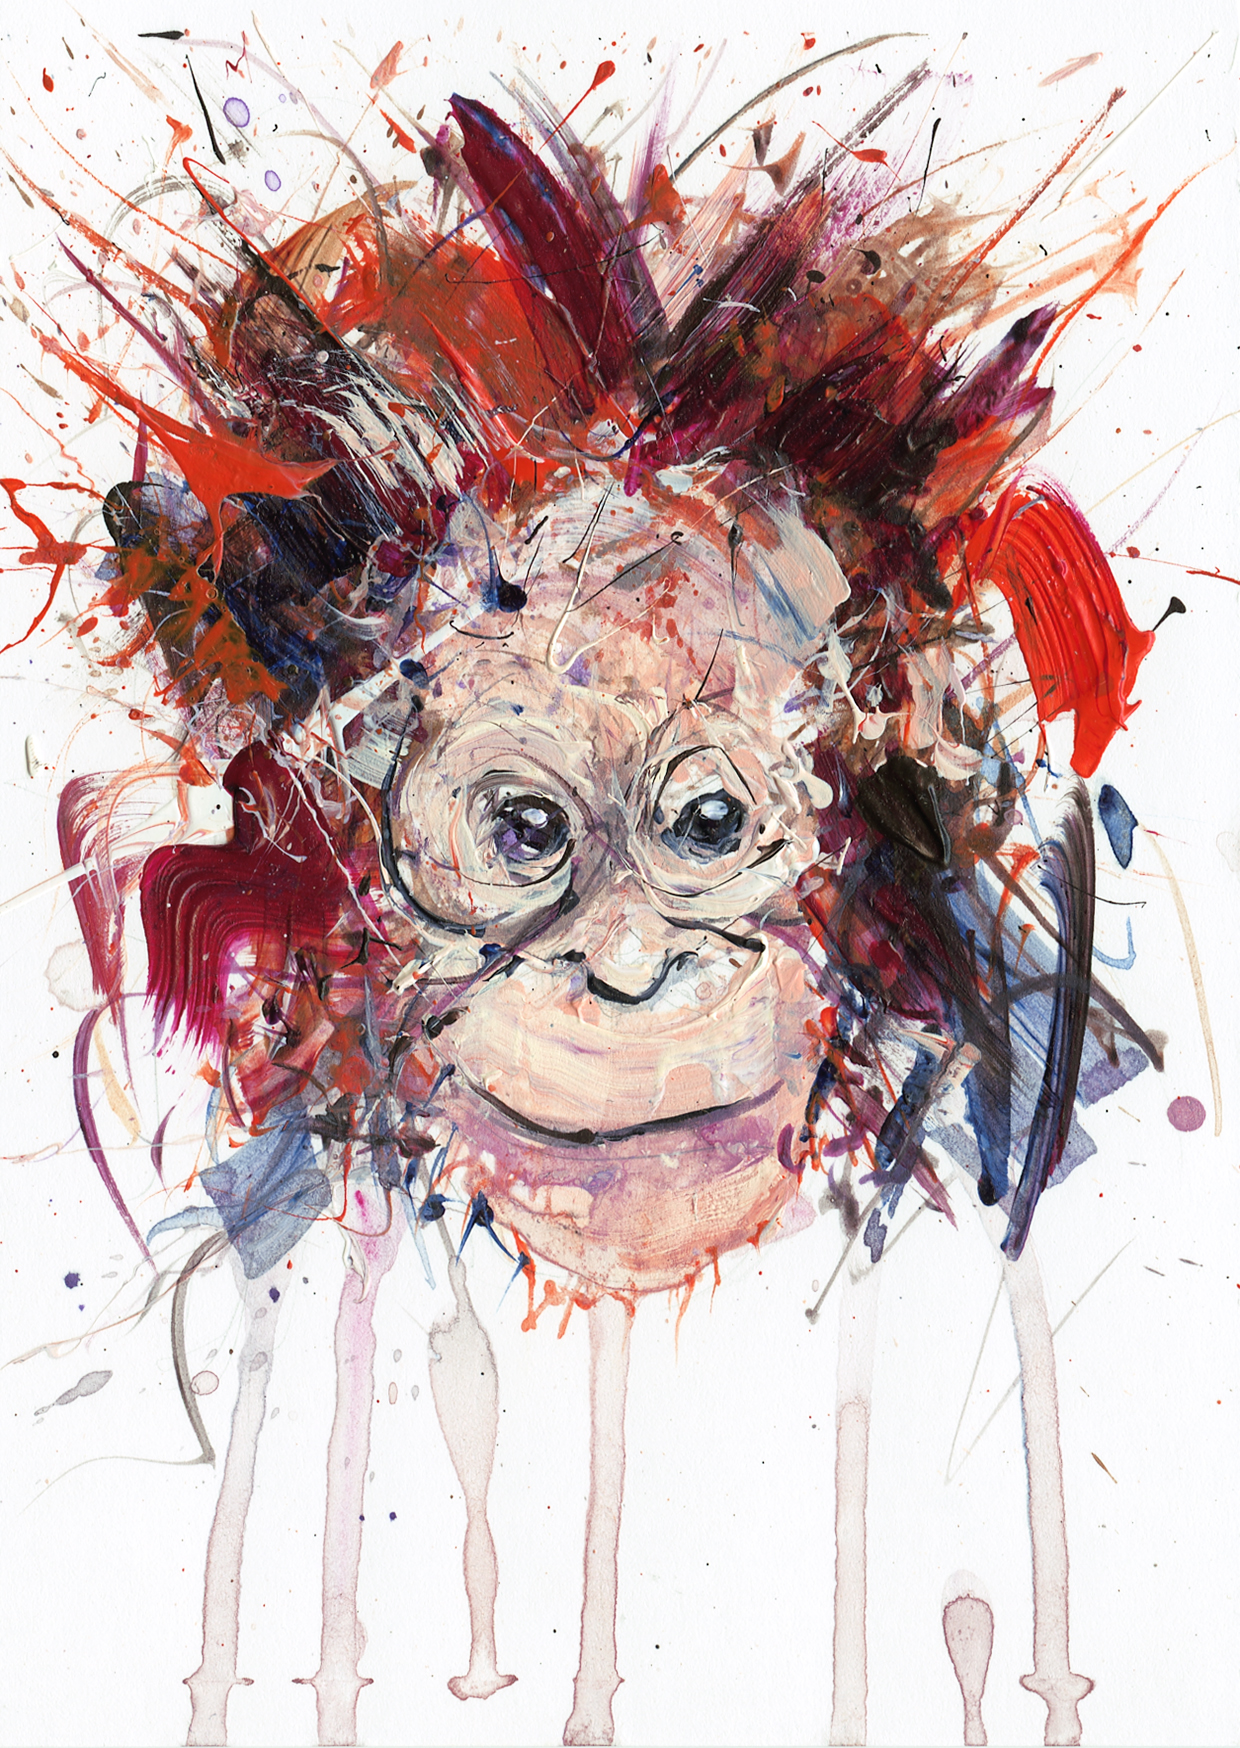 Lot 212 - Young Orangutan (Acrylic) by Dave White sold for £500